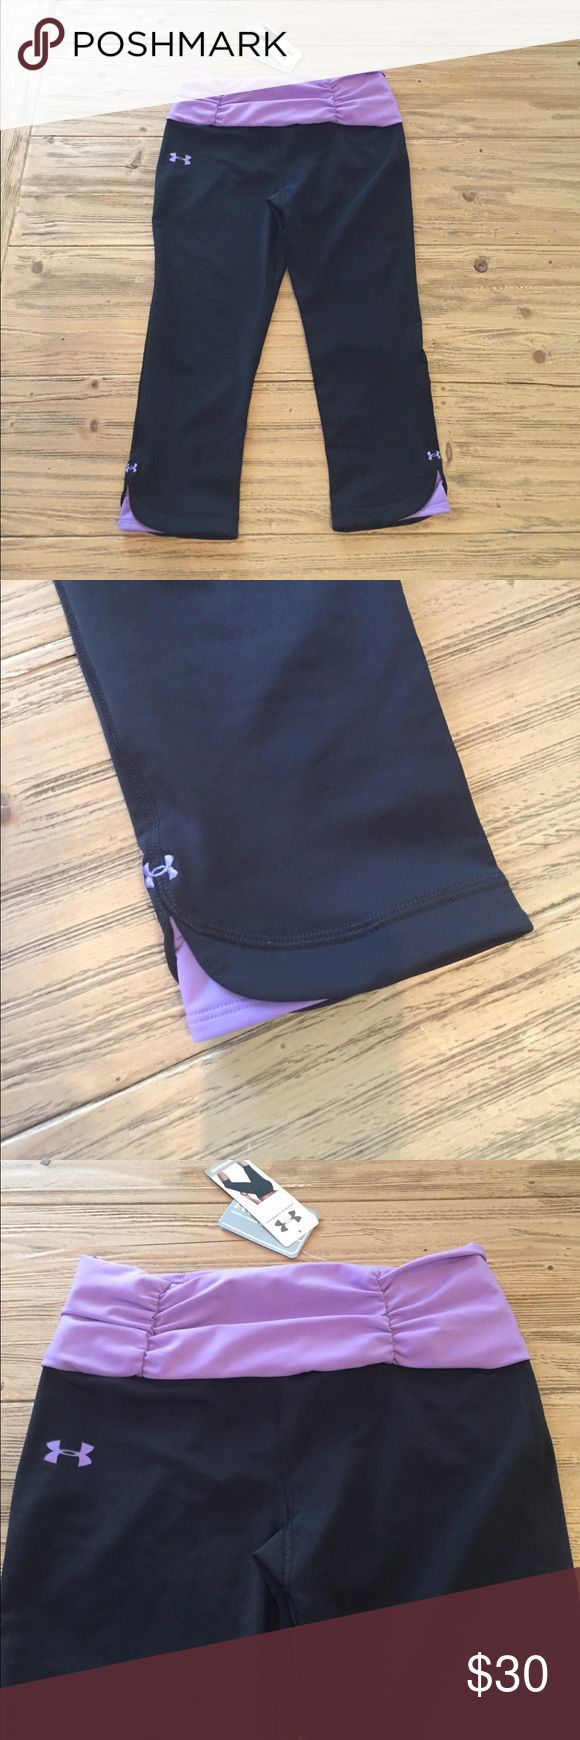 NWT Under Armour M Capri compression leggings Brand new with tags size Medium ladies Under Armour compression Capri leggings. Black and purple. Super cute treatment at bottoms. Under Armour Pants